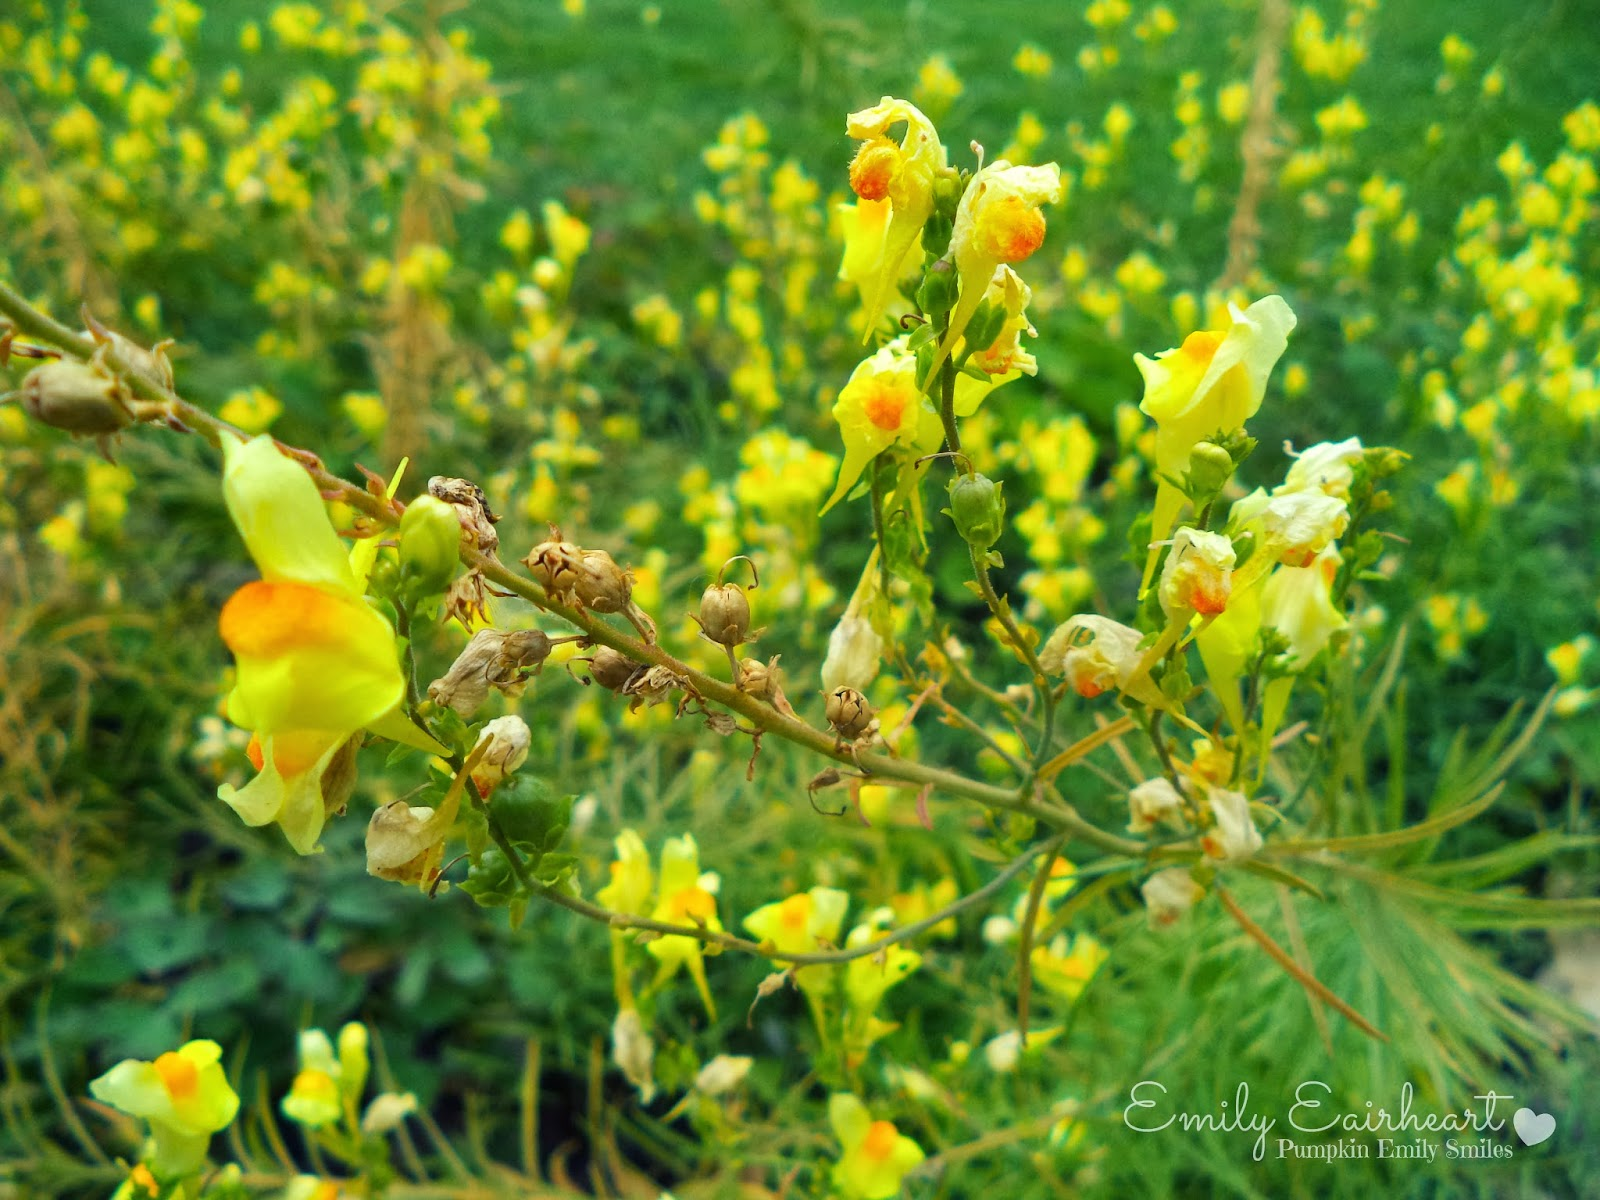 Butter and eggs or called Linaria Vulgarius